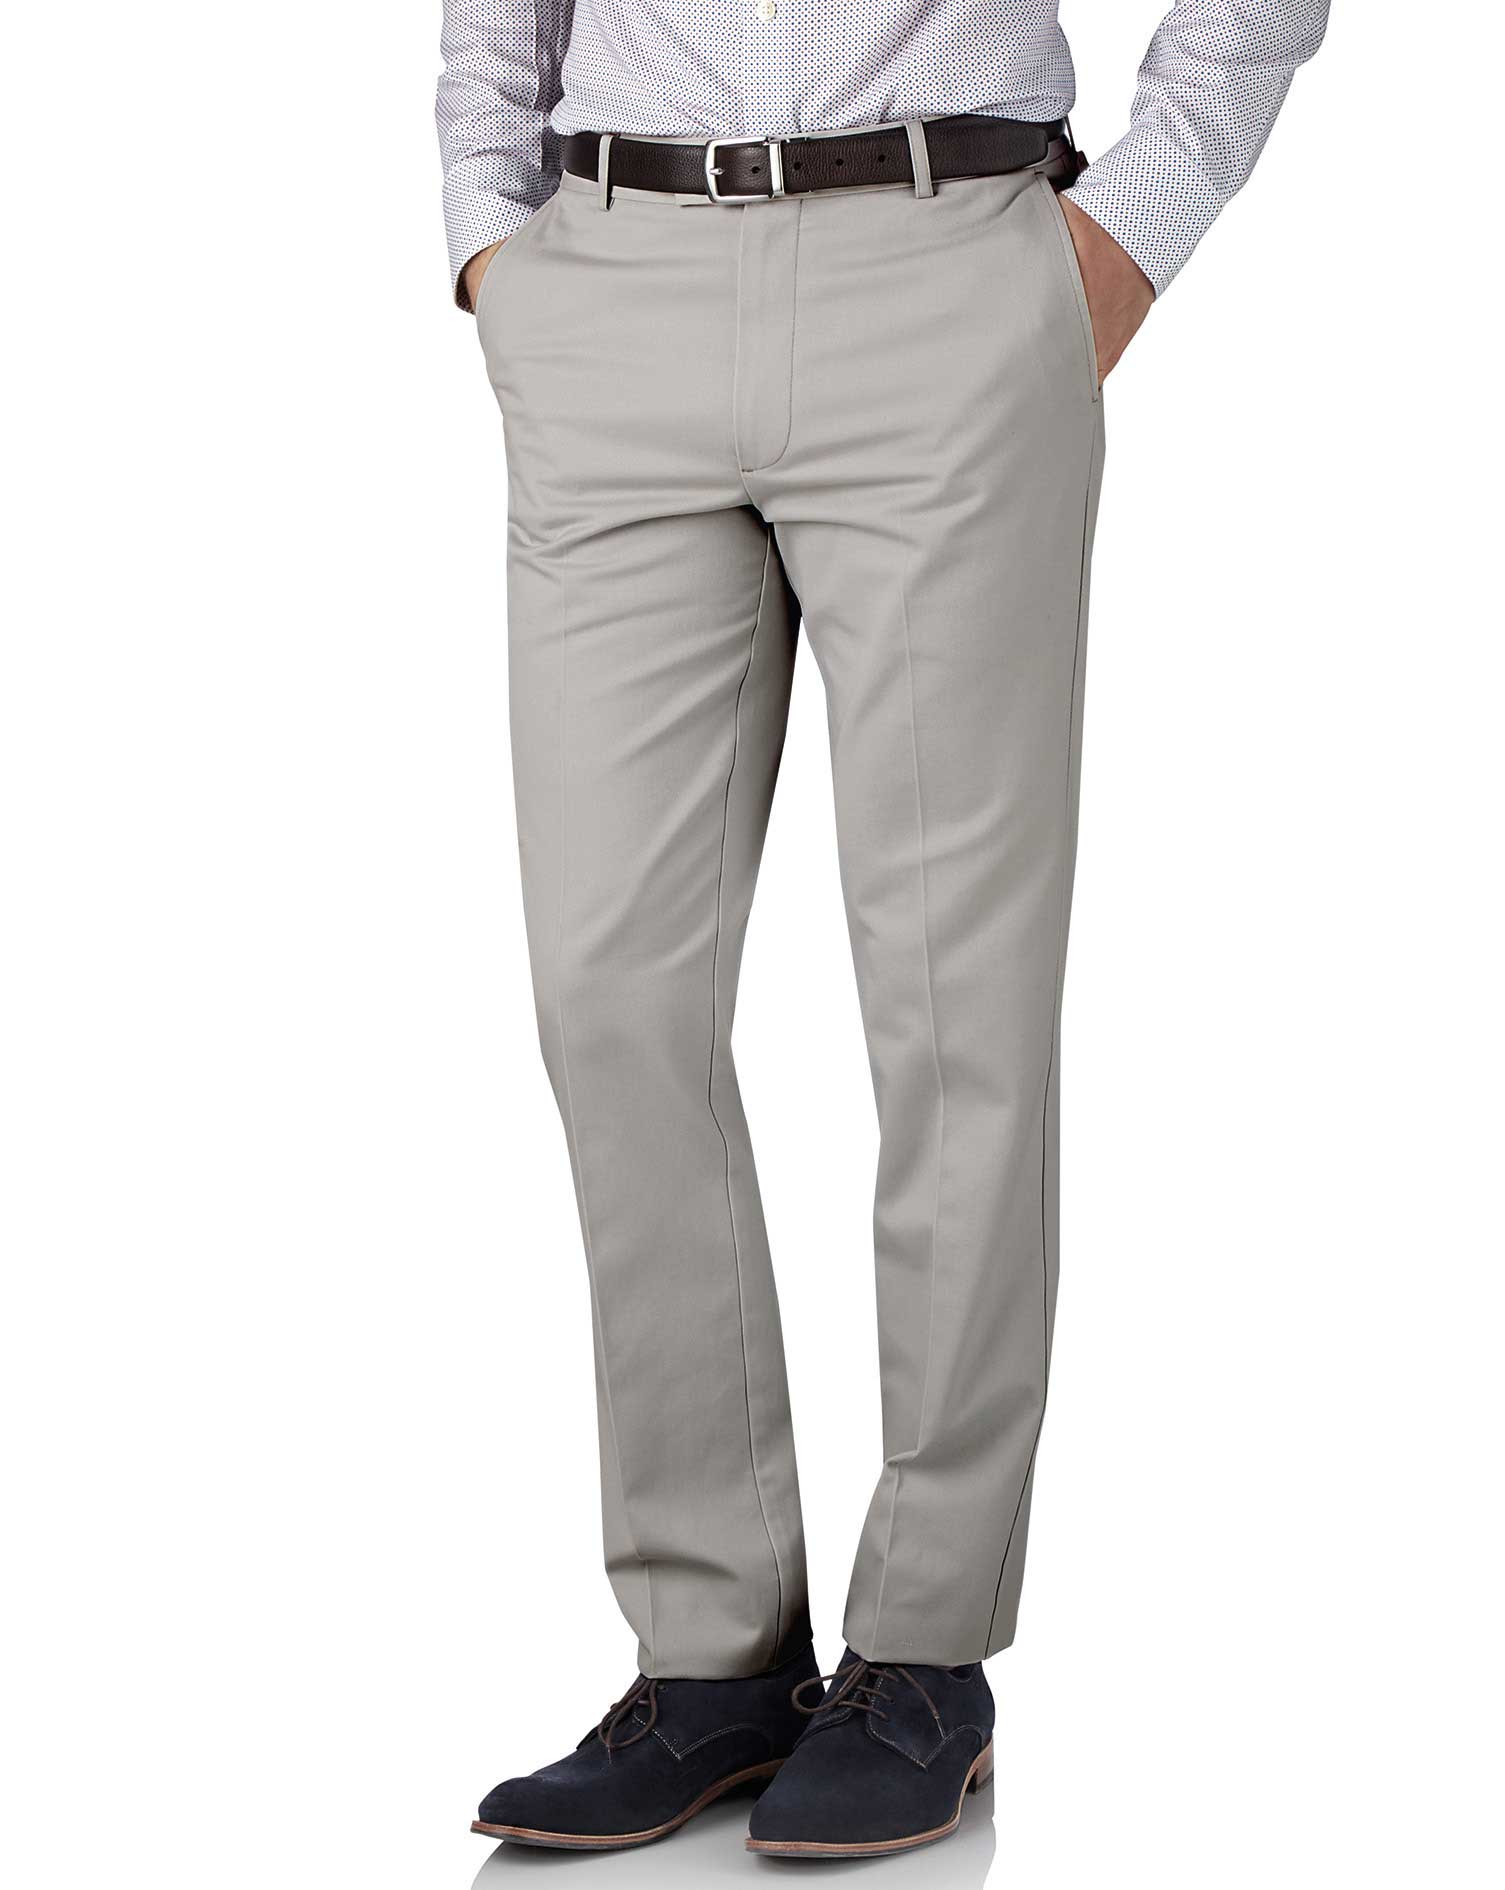 Silver Grey Slim Fit Flat Front Non-Iron Cotton Chino Trousers Size W30 L32 by Charles Tyrwhitt